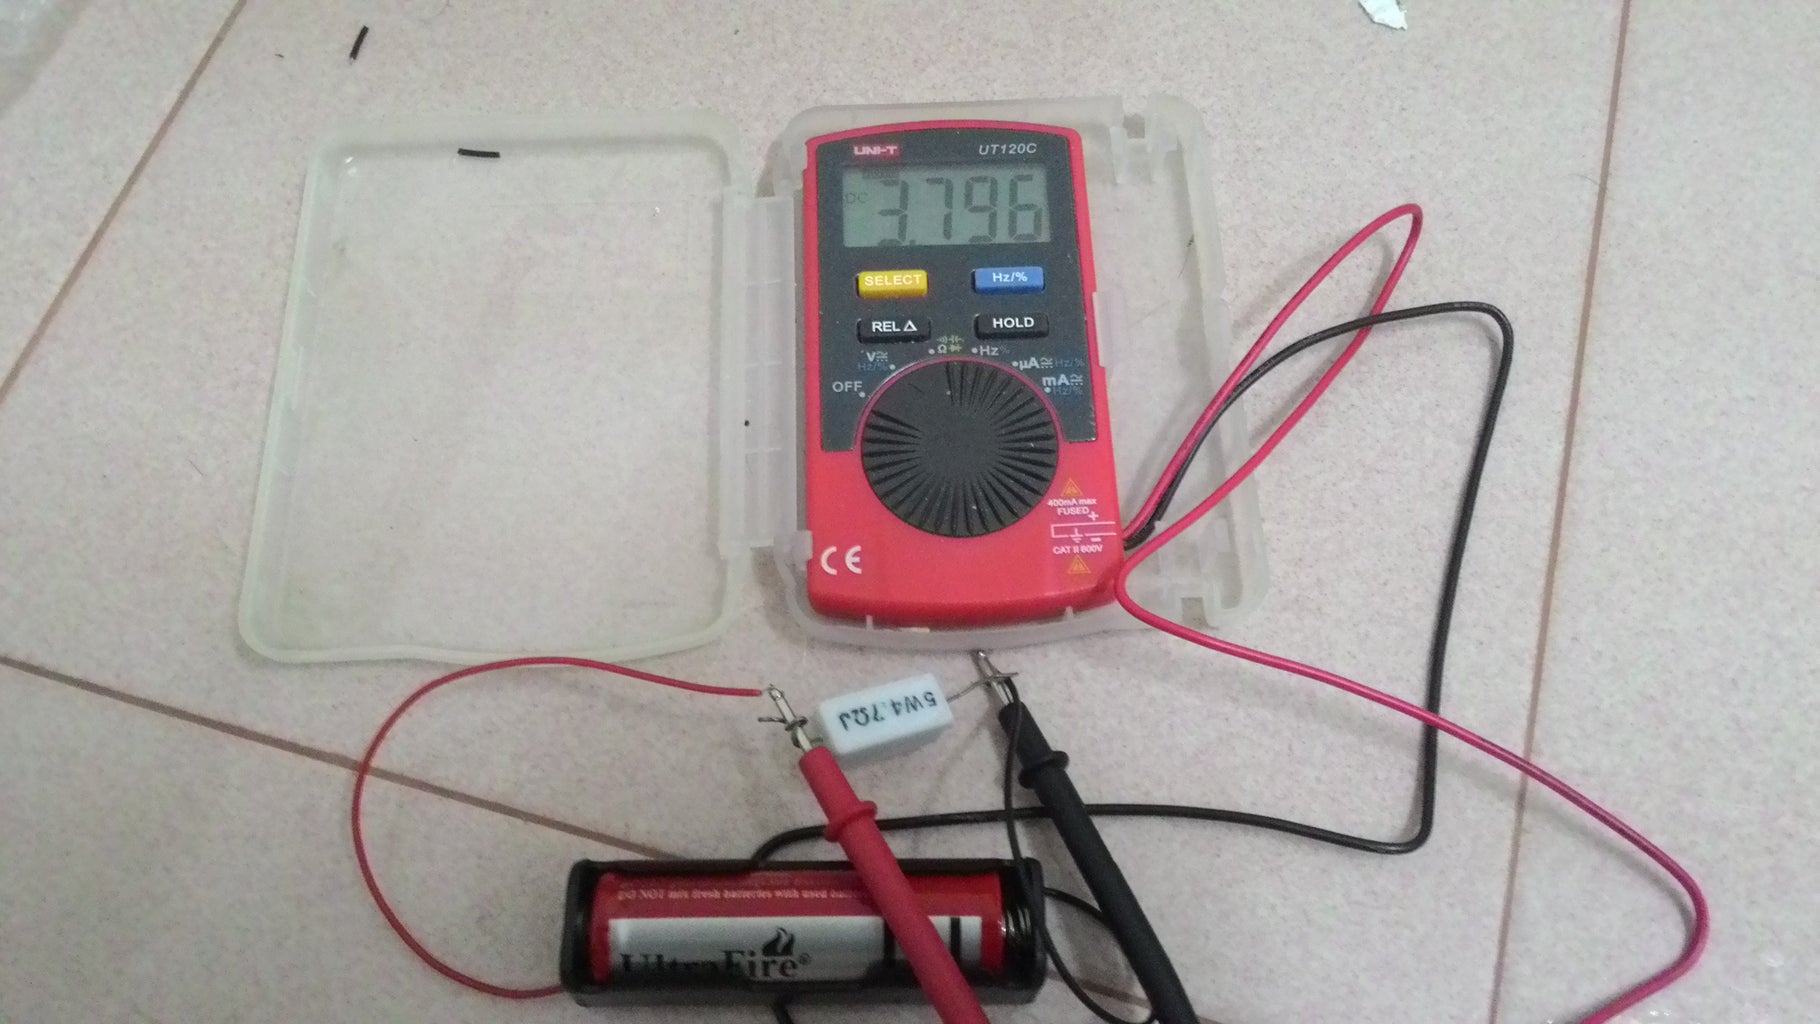 Measuring the Voltage Across the Load Resistor